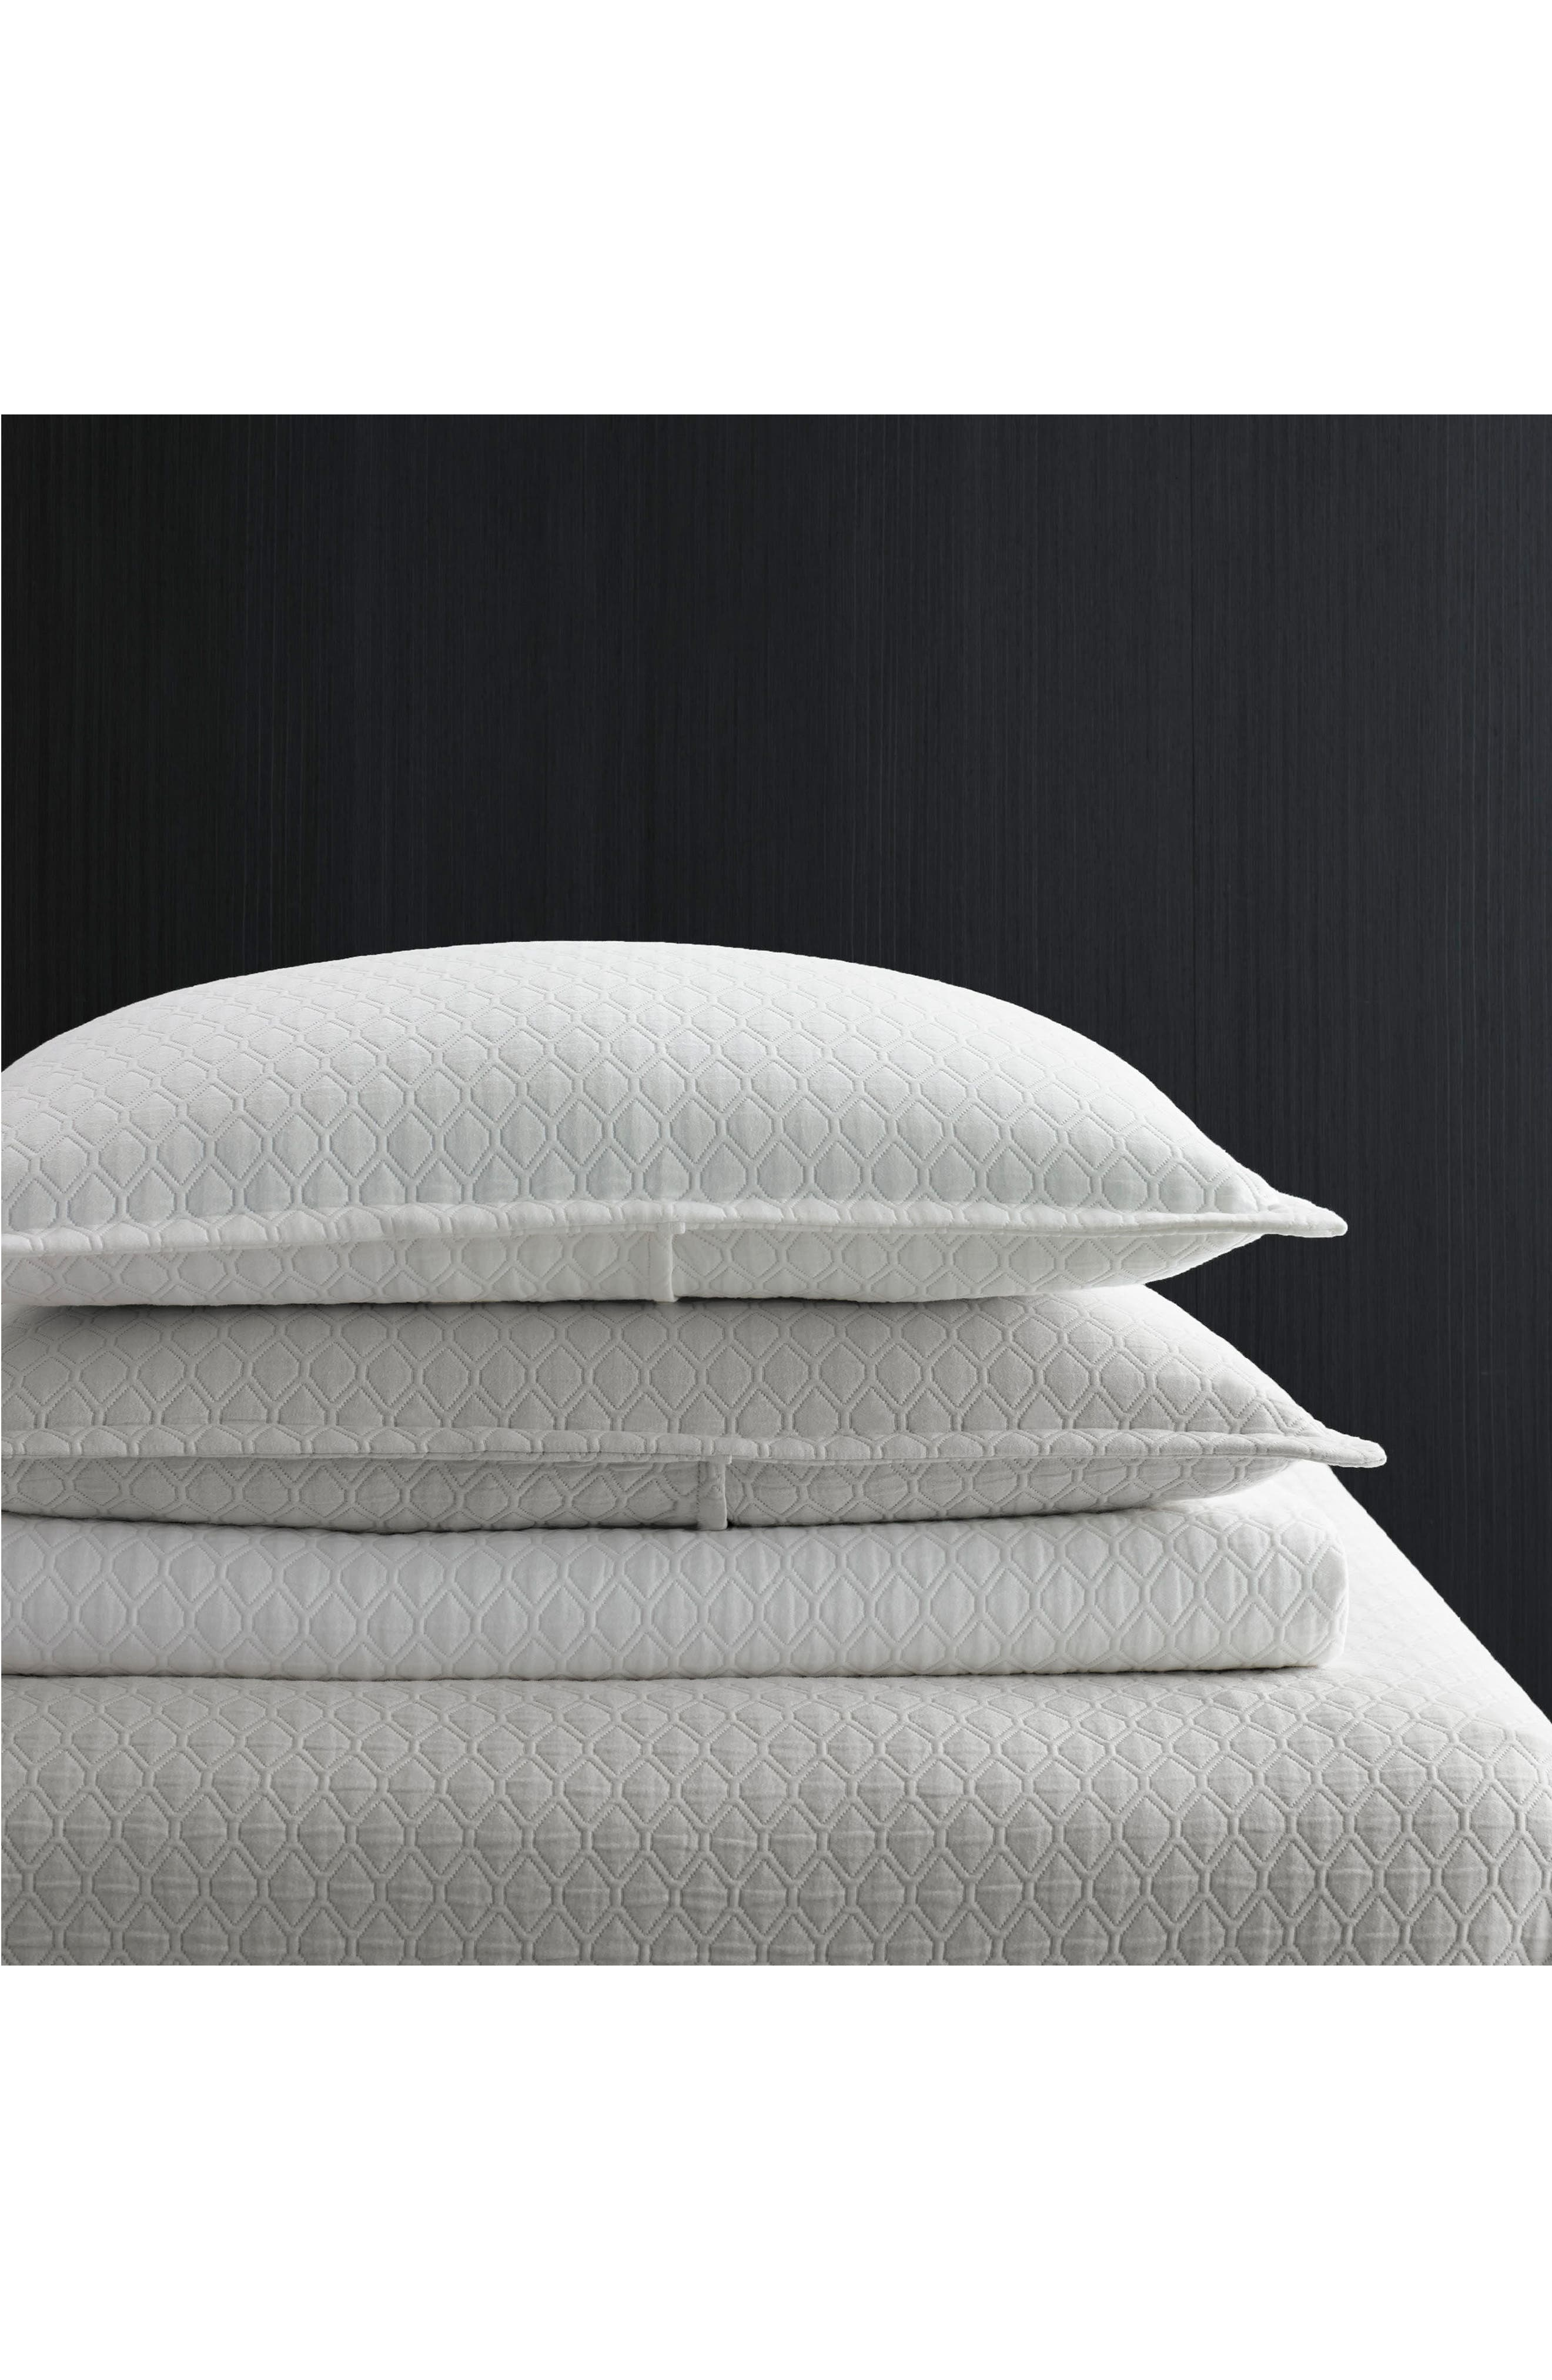 Alternate Image 2  - Vera Wang Puckered Diamond Matelassé Coverlet